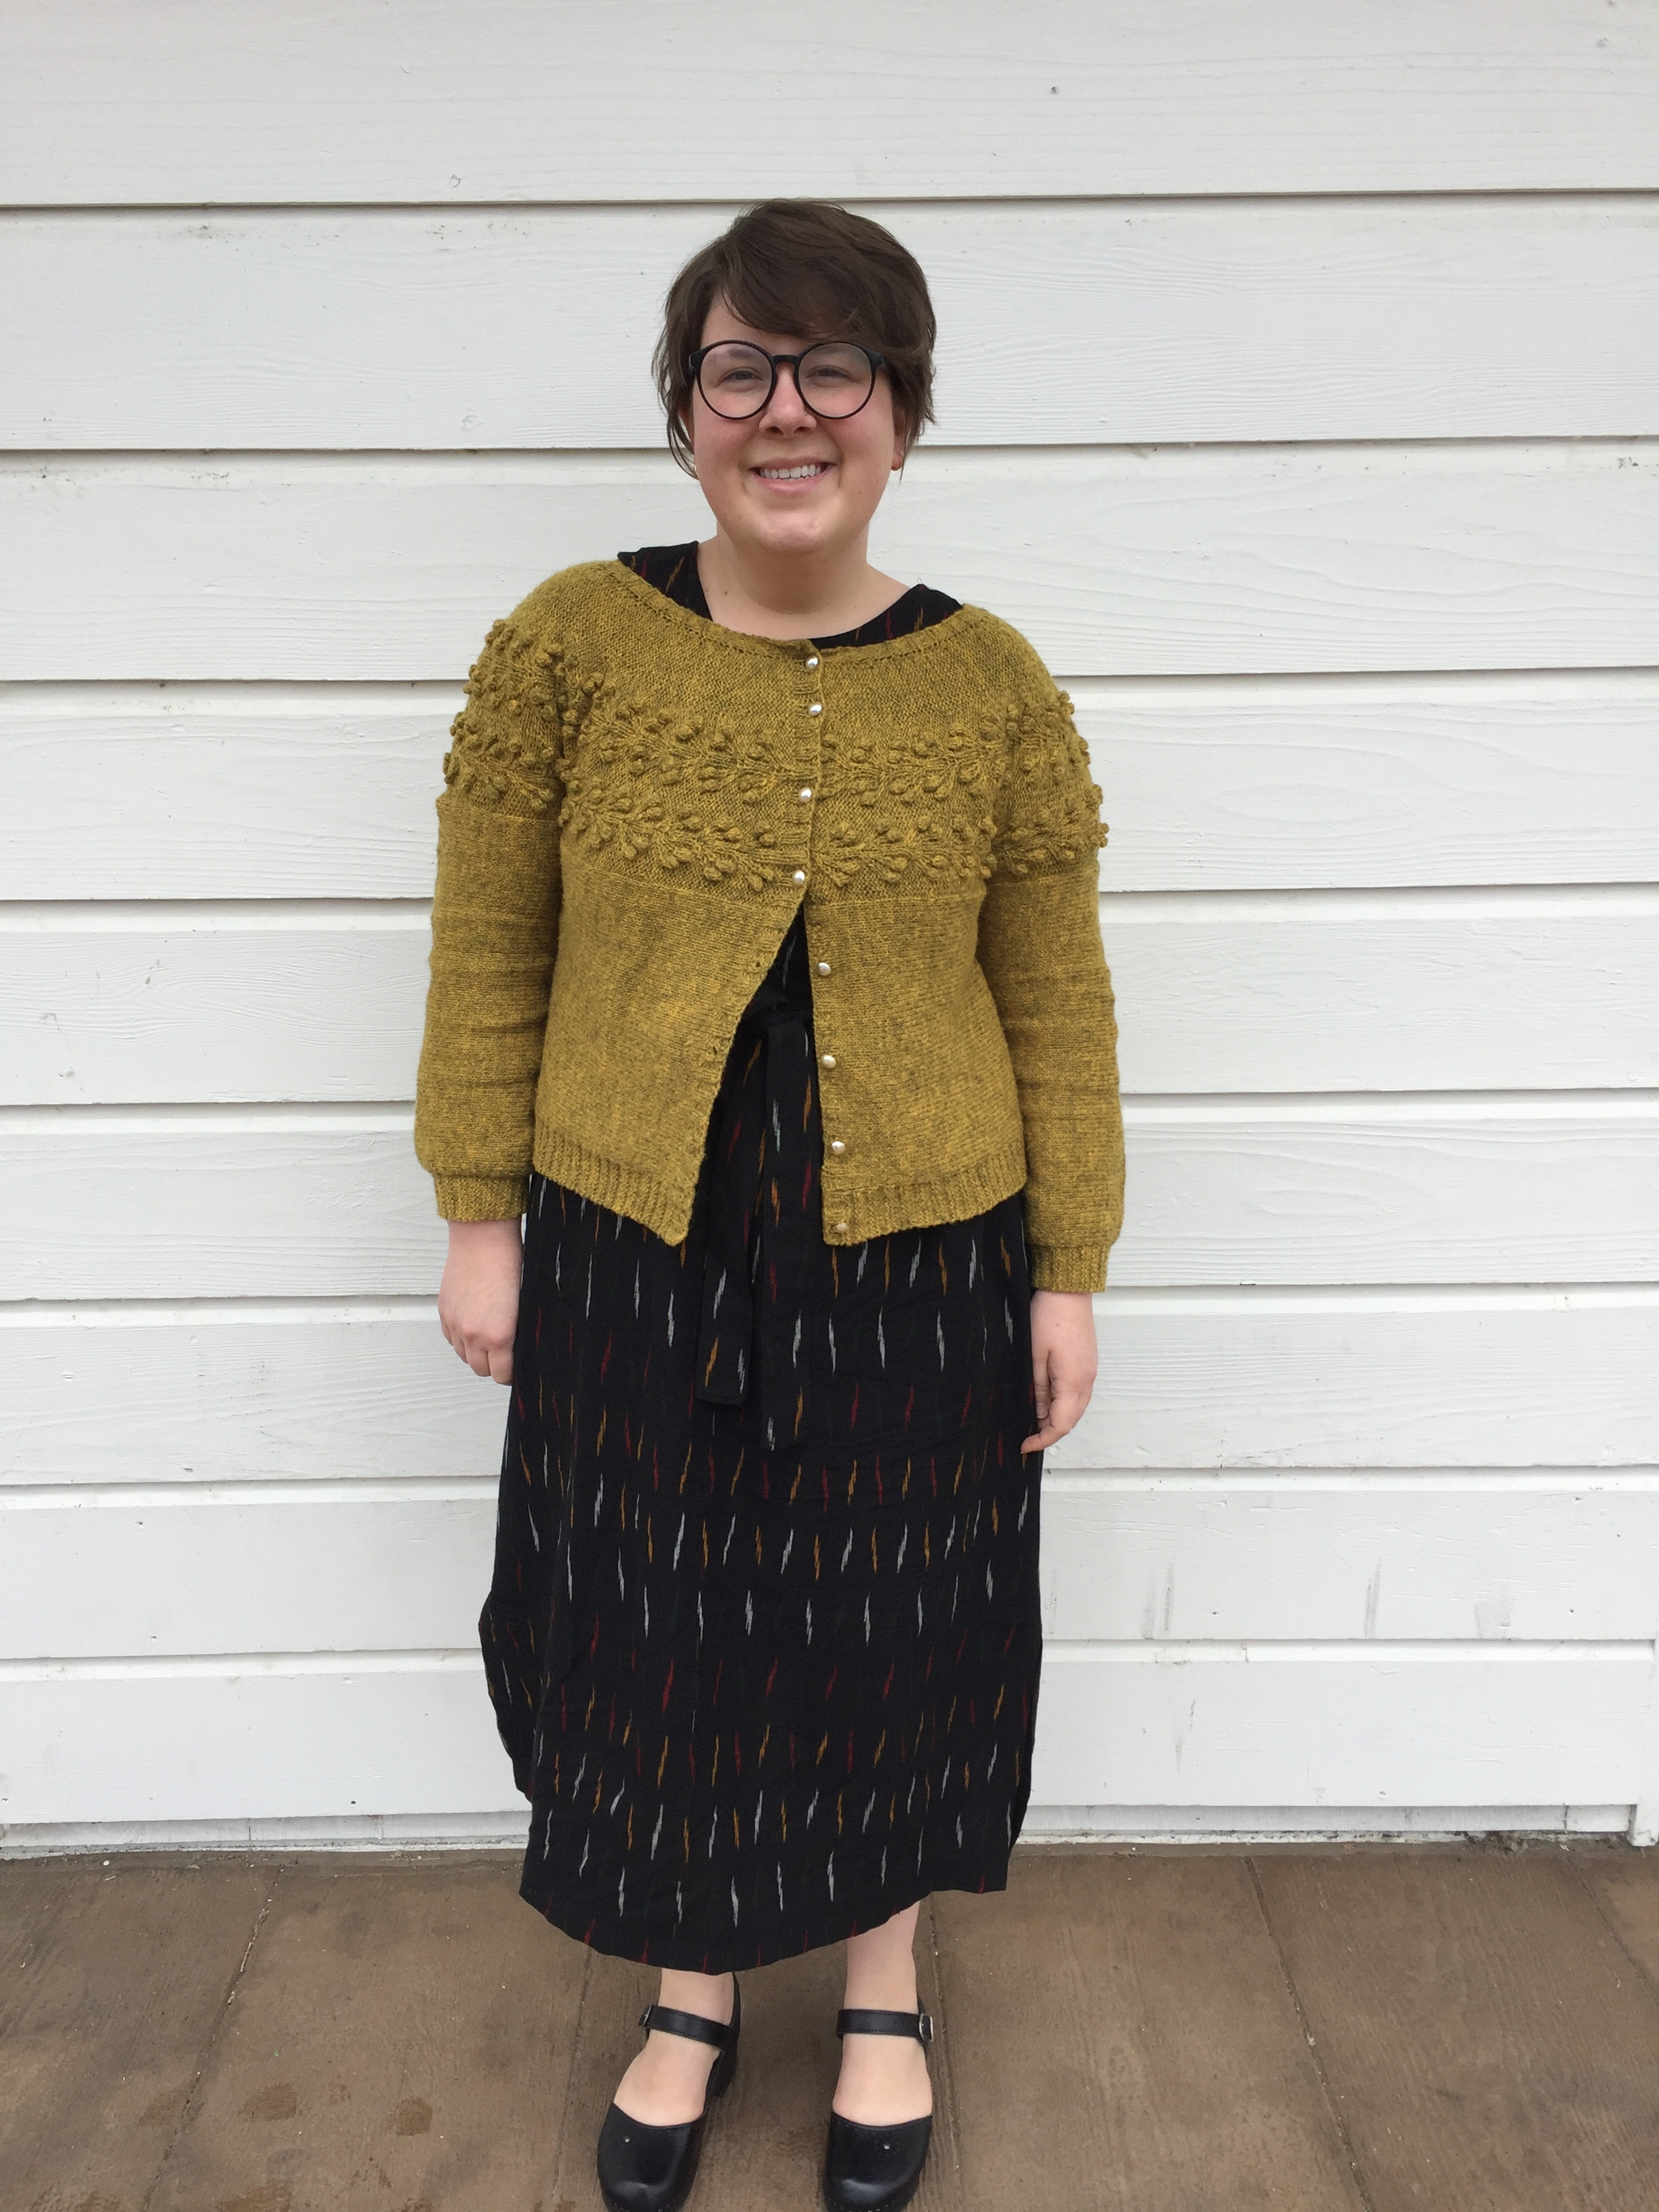 May 26: Wiksten Shift & Laaka Cardigan